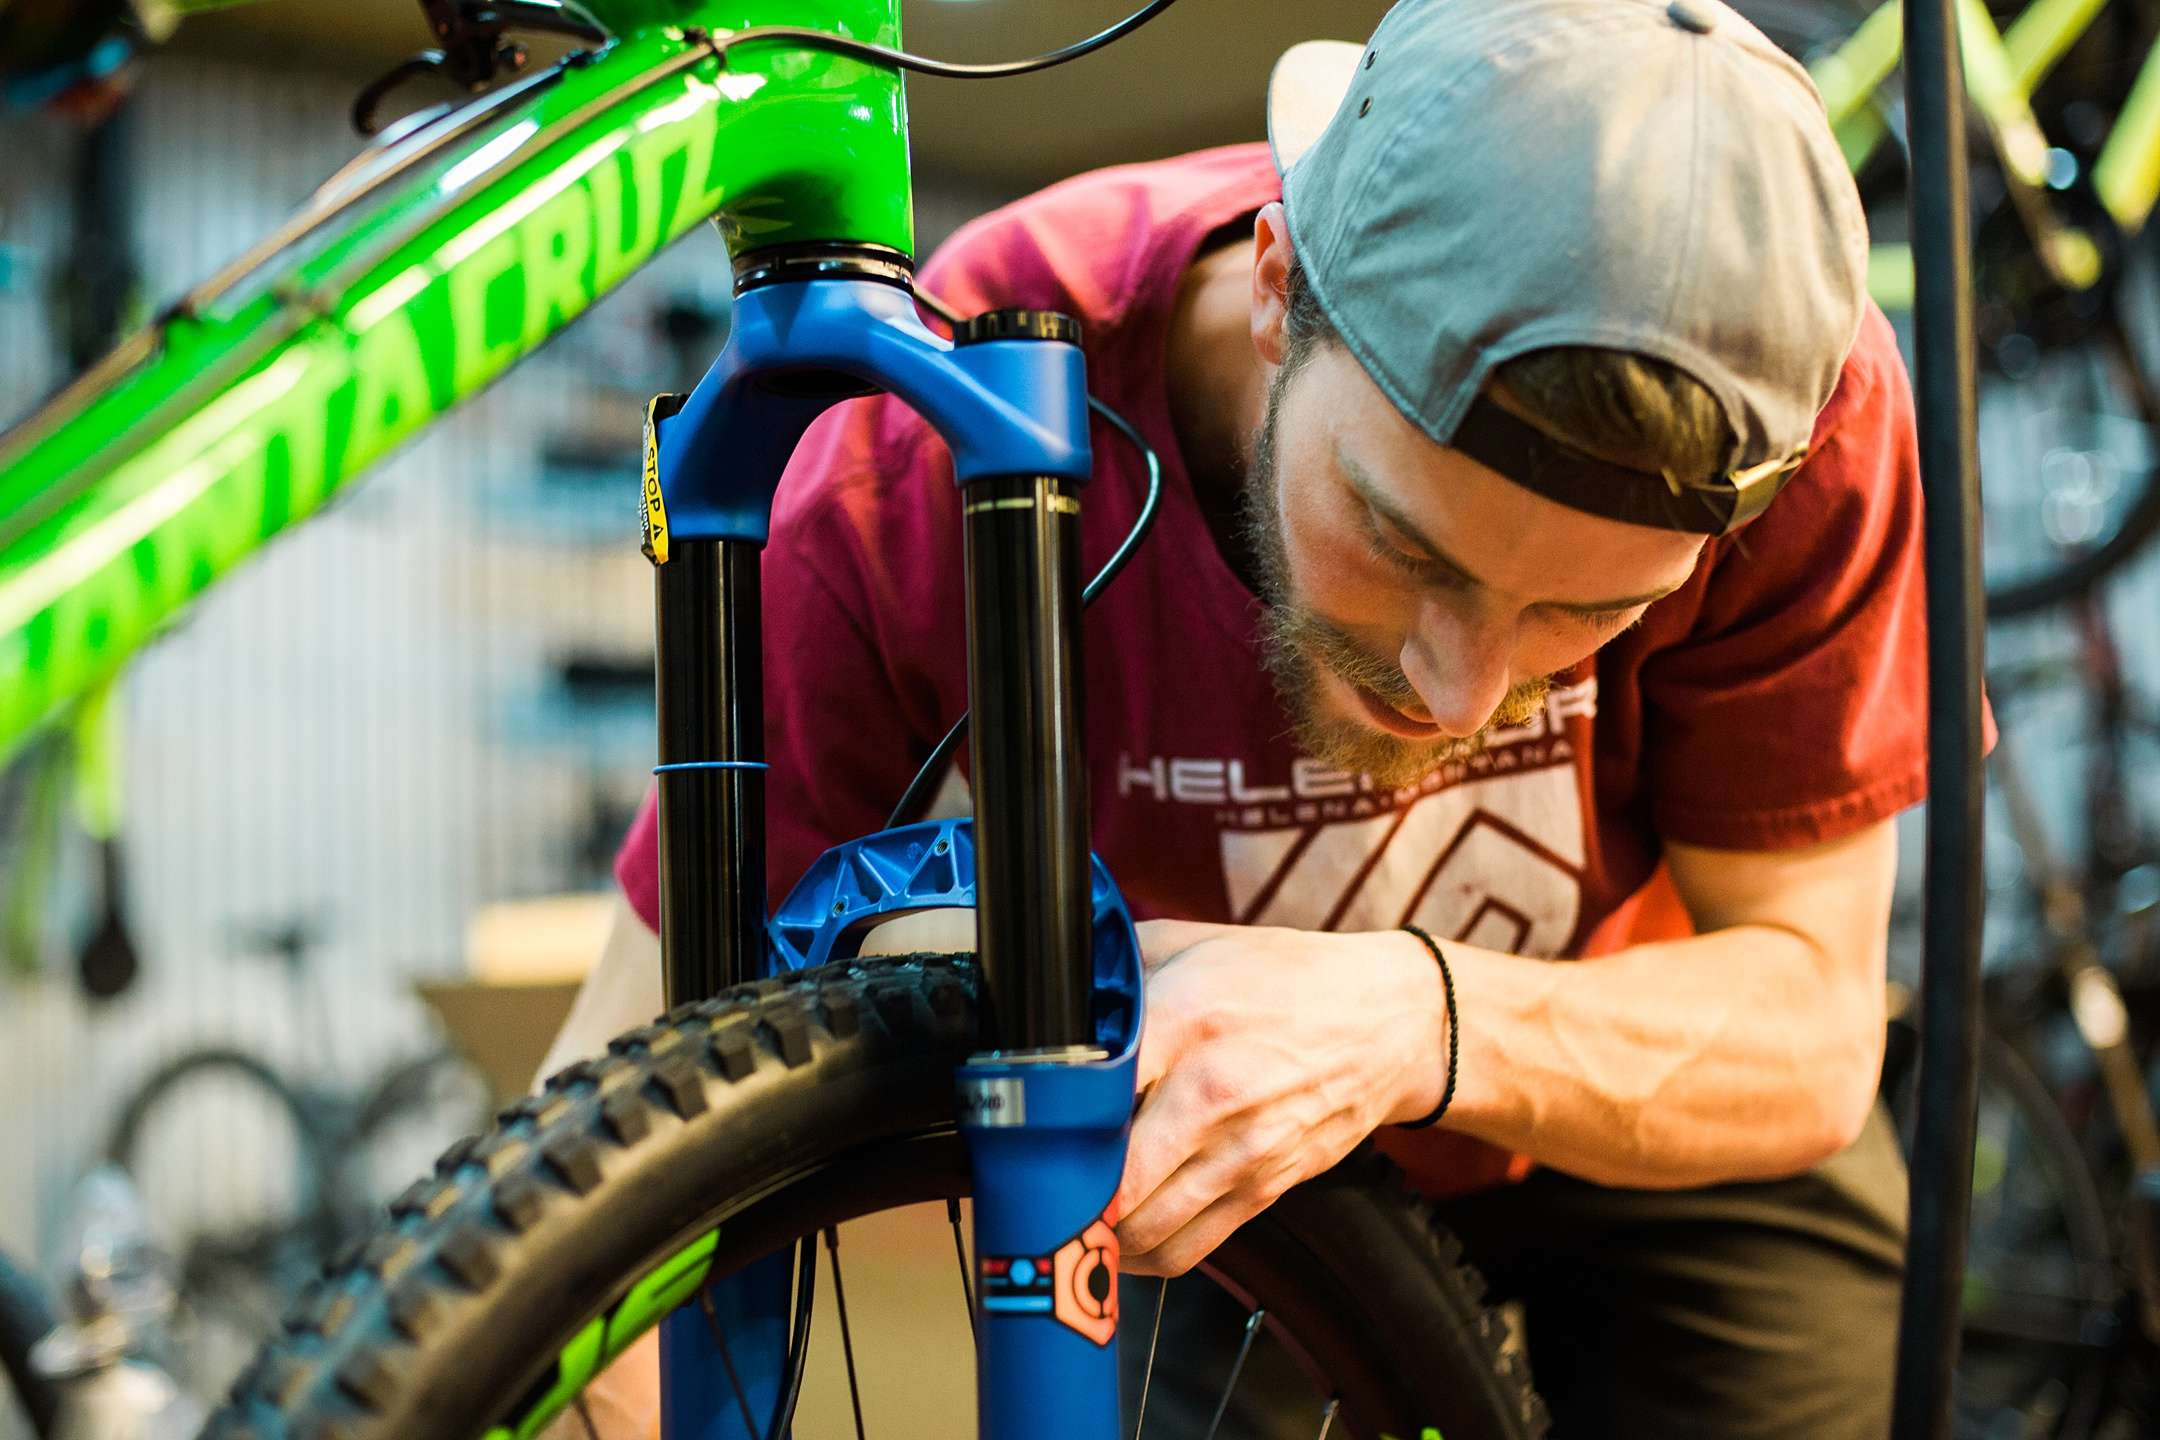 Keenan Cox, Bike Mechanic & Sales at Grand Ridge Cyclery